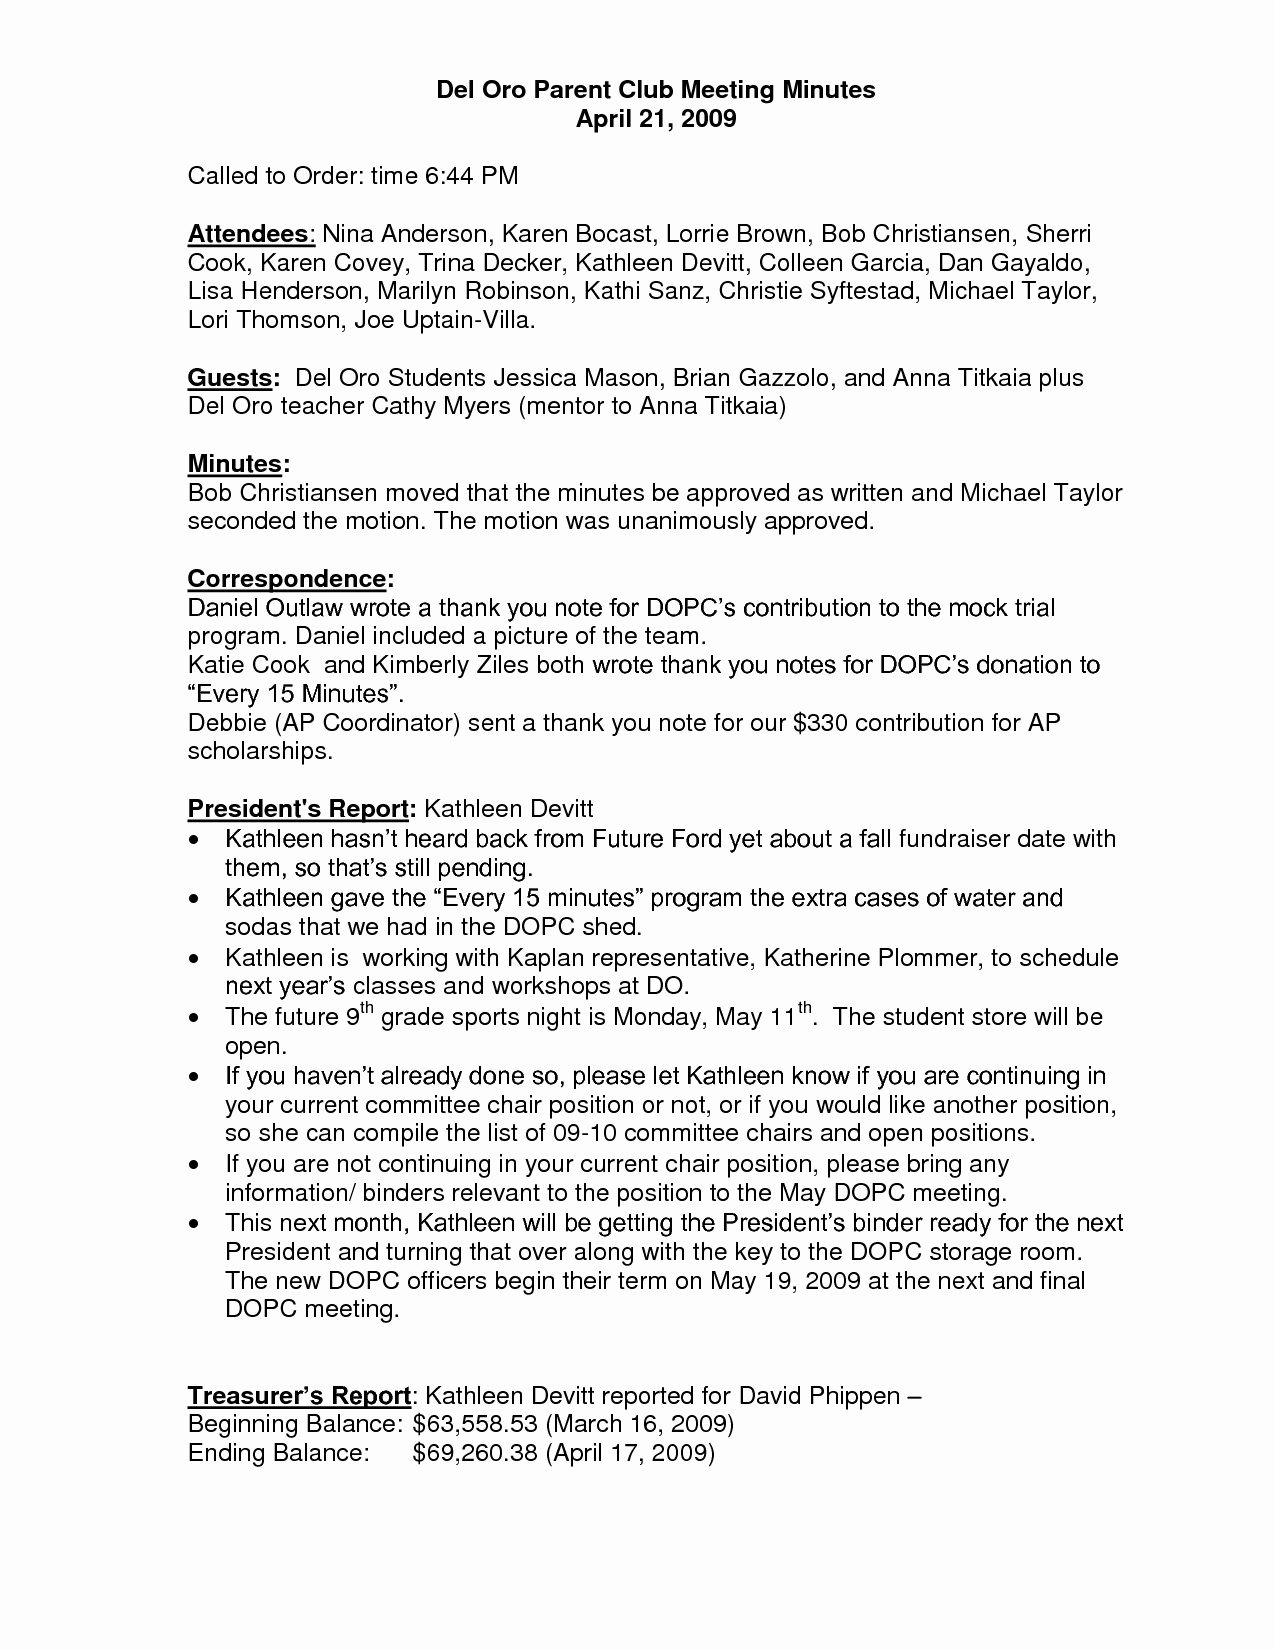 Booster Club Meeting Minutes Template Lovely 27 Of Template for Club Meeting Minutes Template